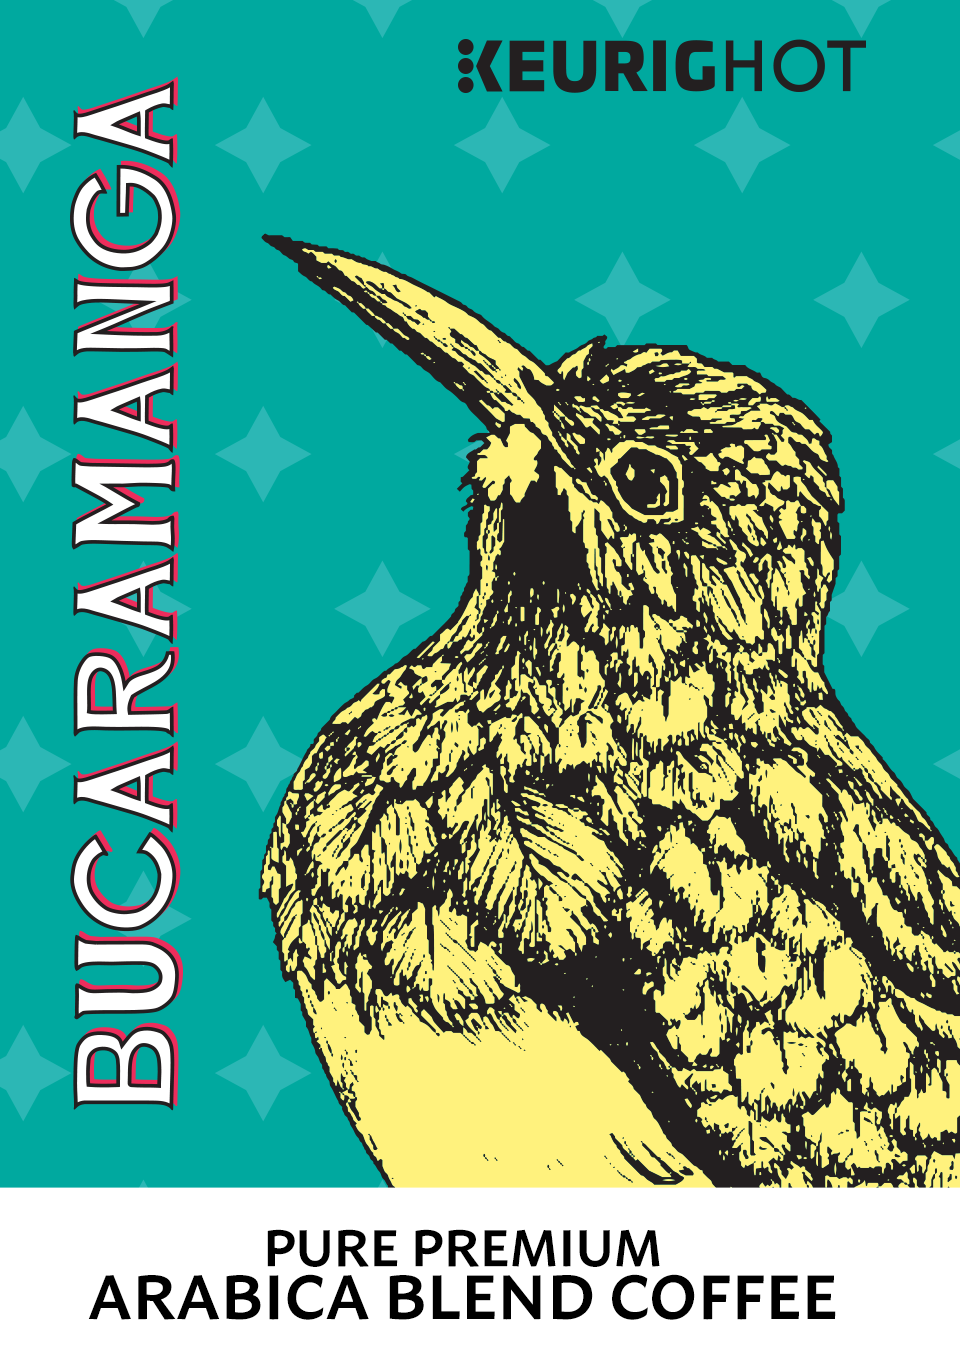 Bucaramanga Coffee Products Branding and Design